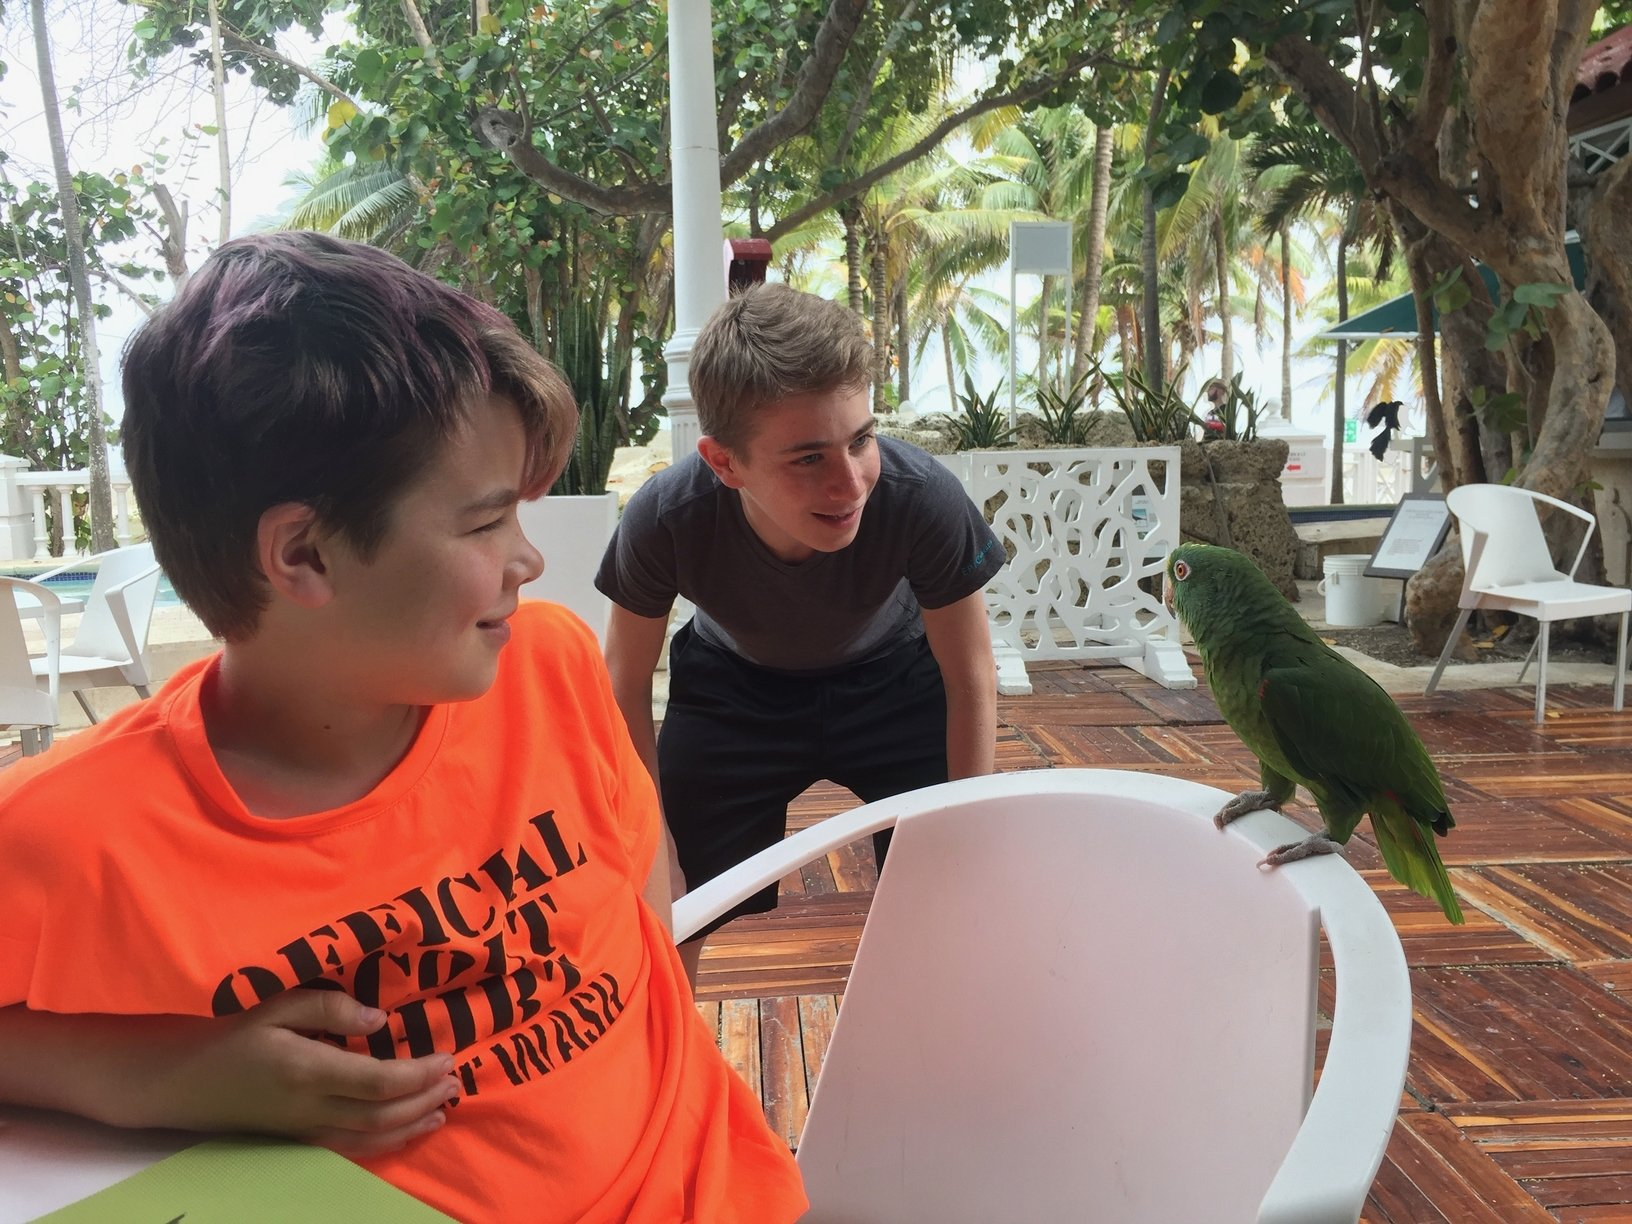 Boys with parrot r